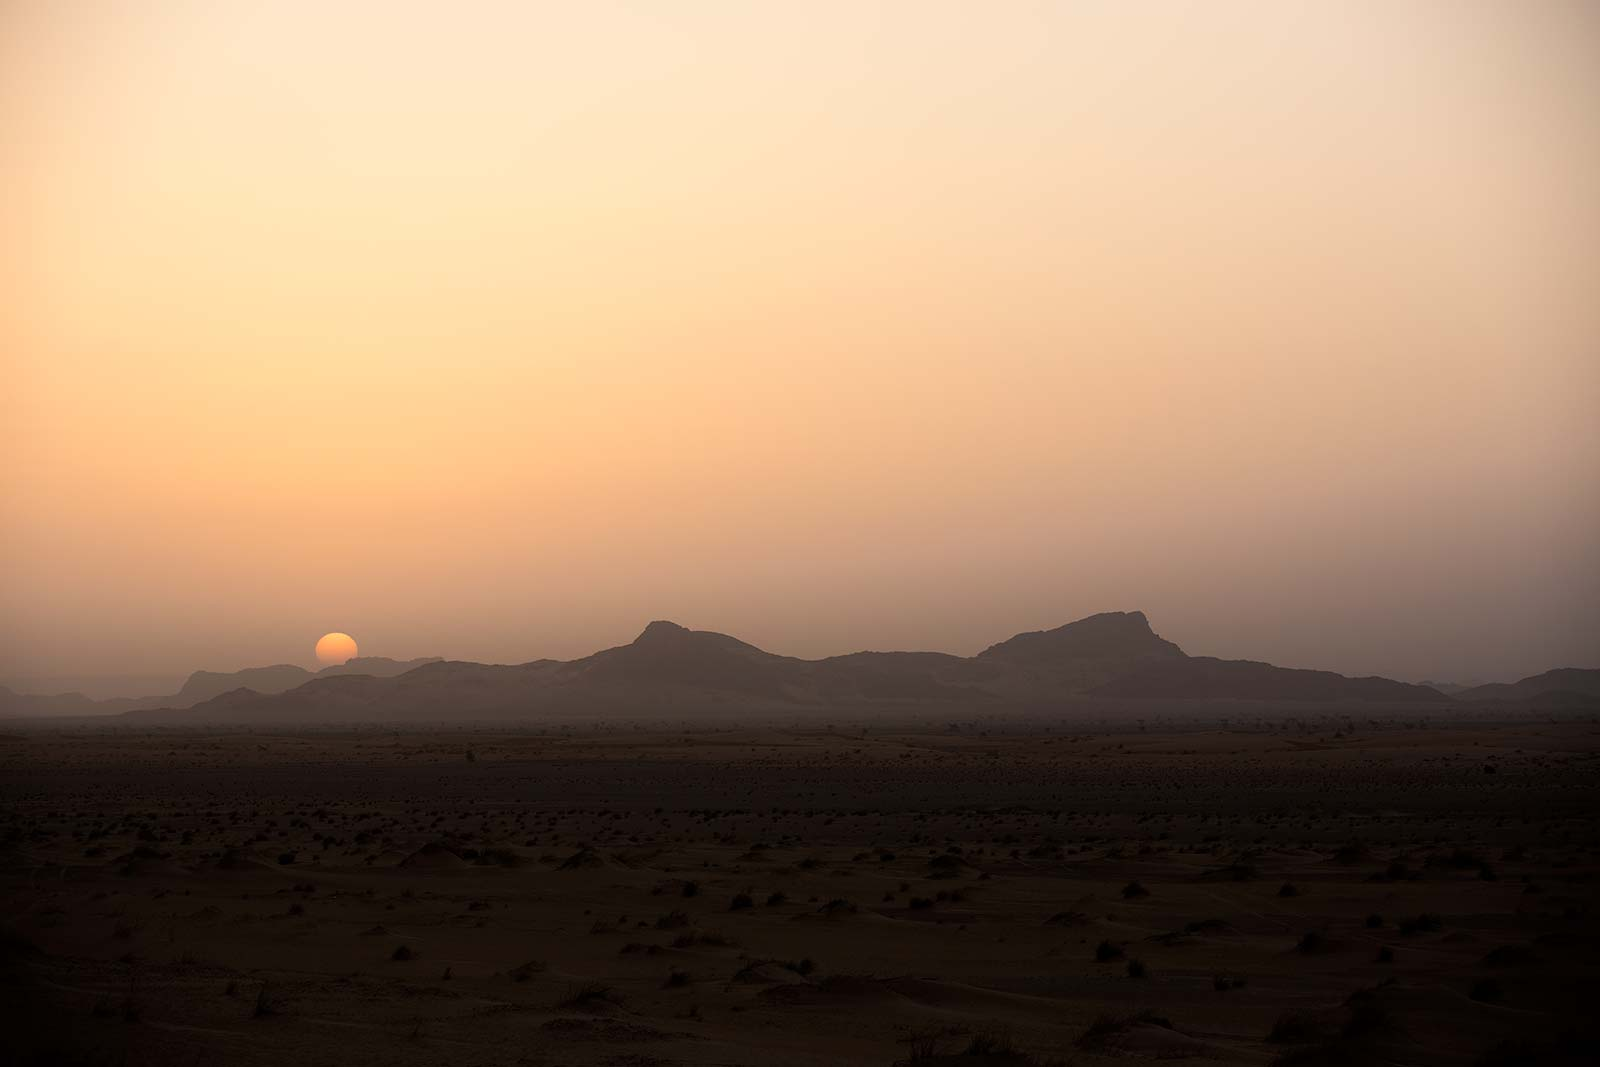 One thing is for sure: the sunset and sunrise while on the Iron Ore Train in Mauritania were some of the most beautiful ones I have ever encountered.